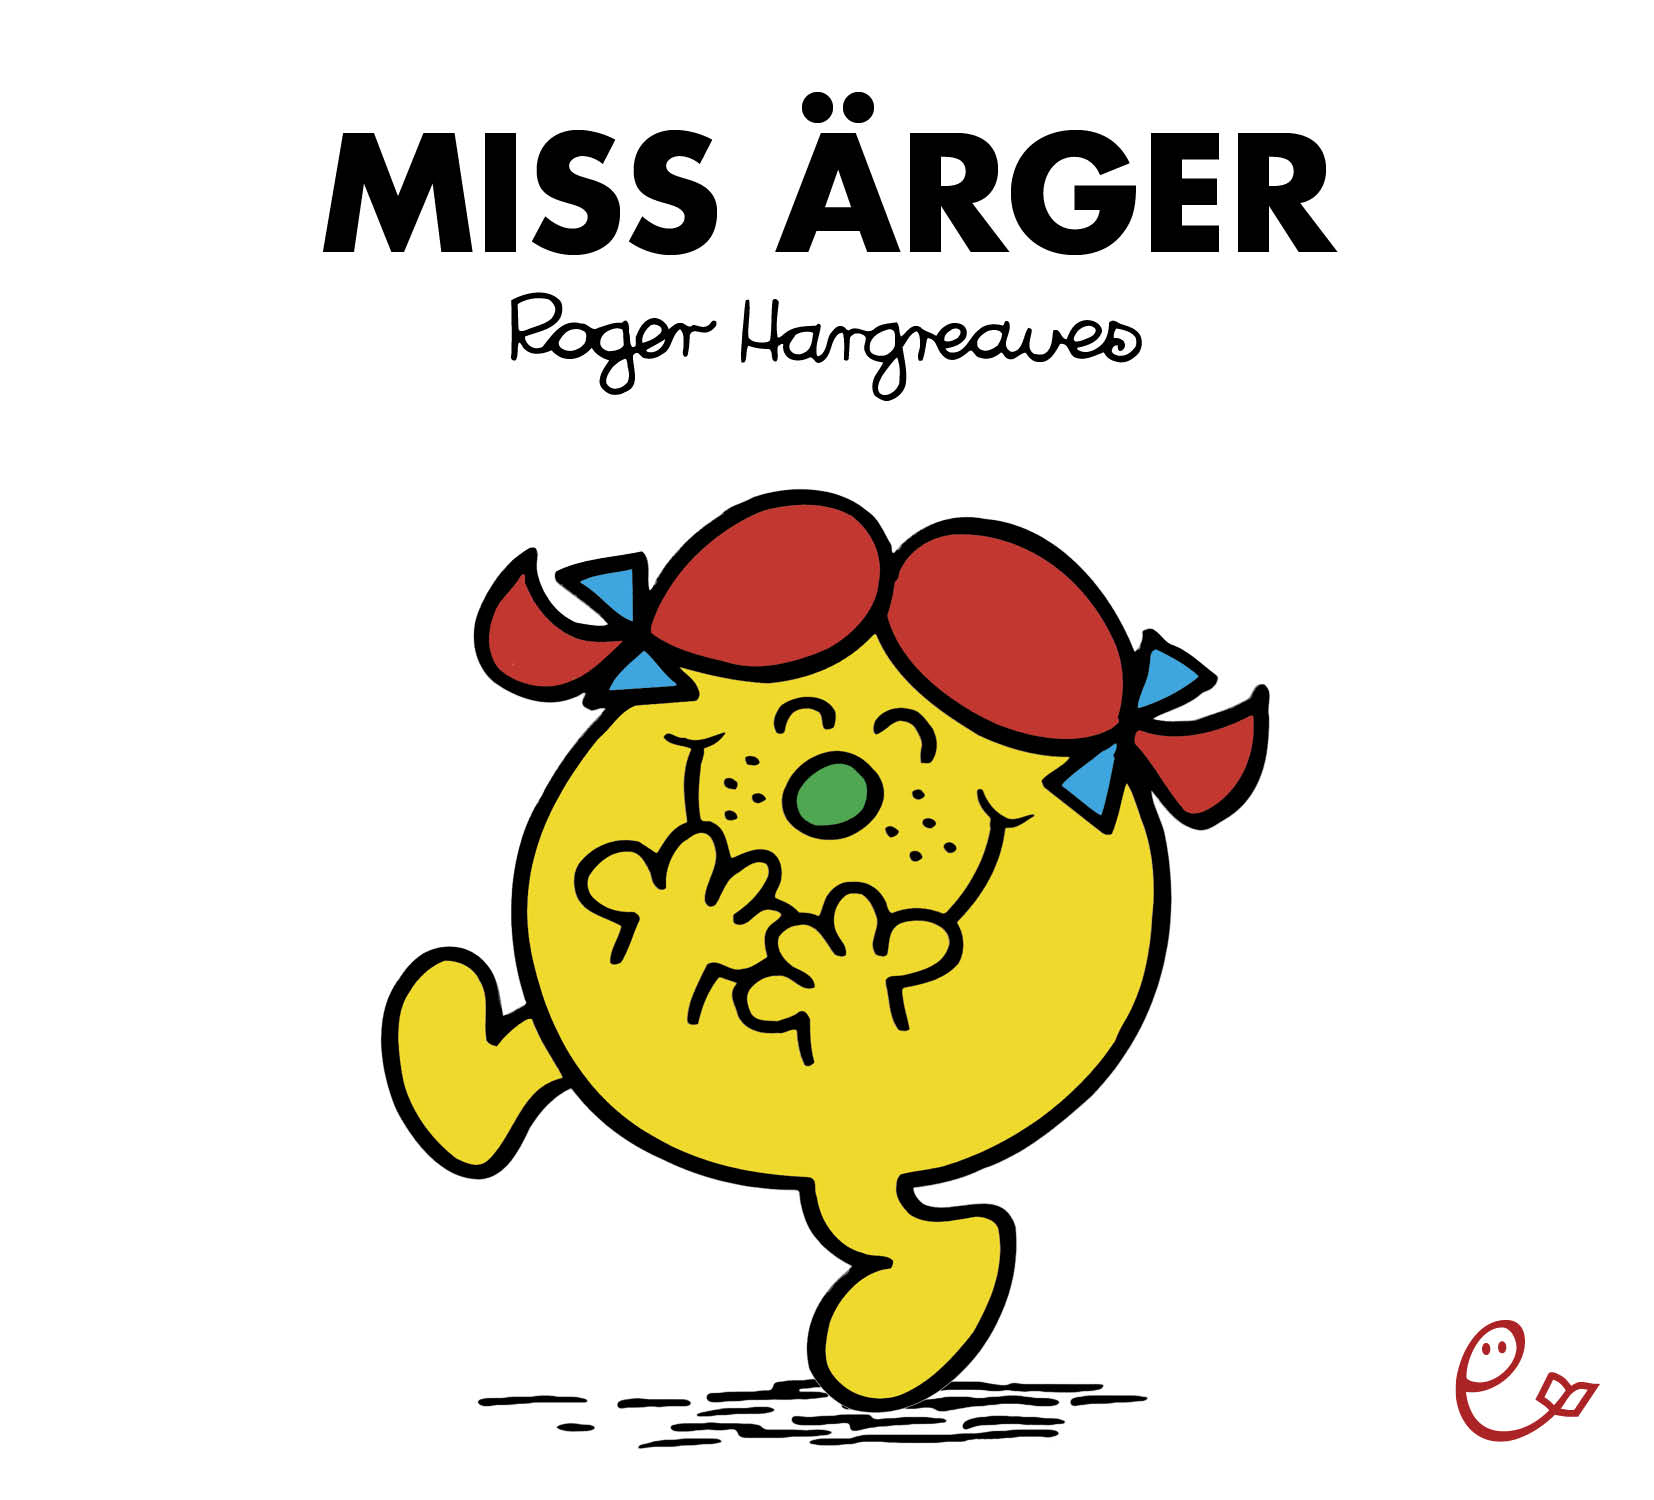 Miss Ärger Roger Hargreaves